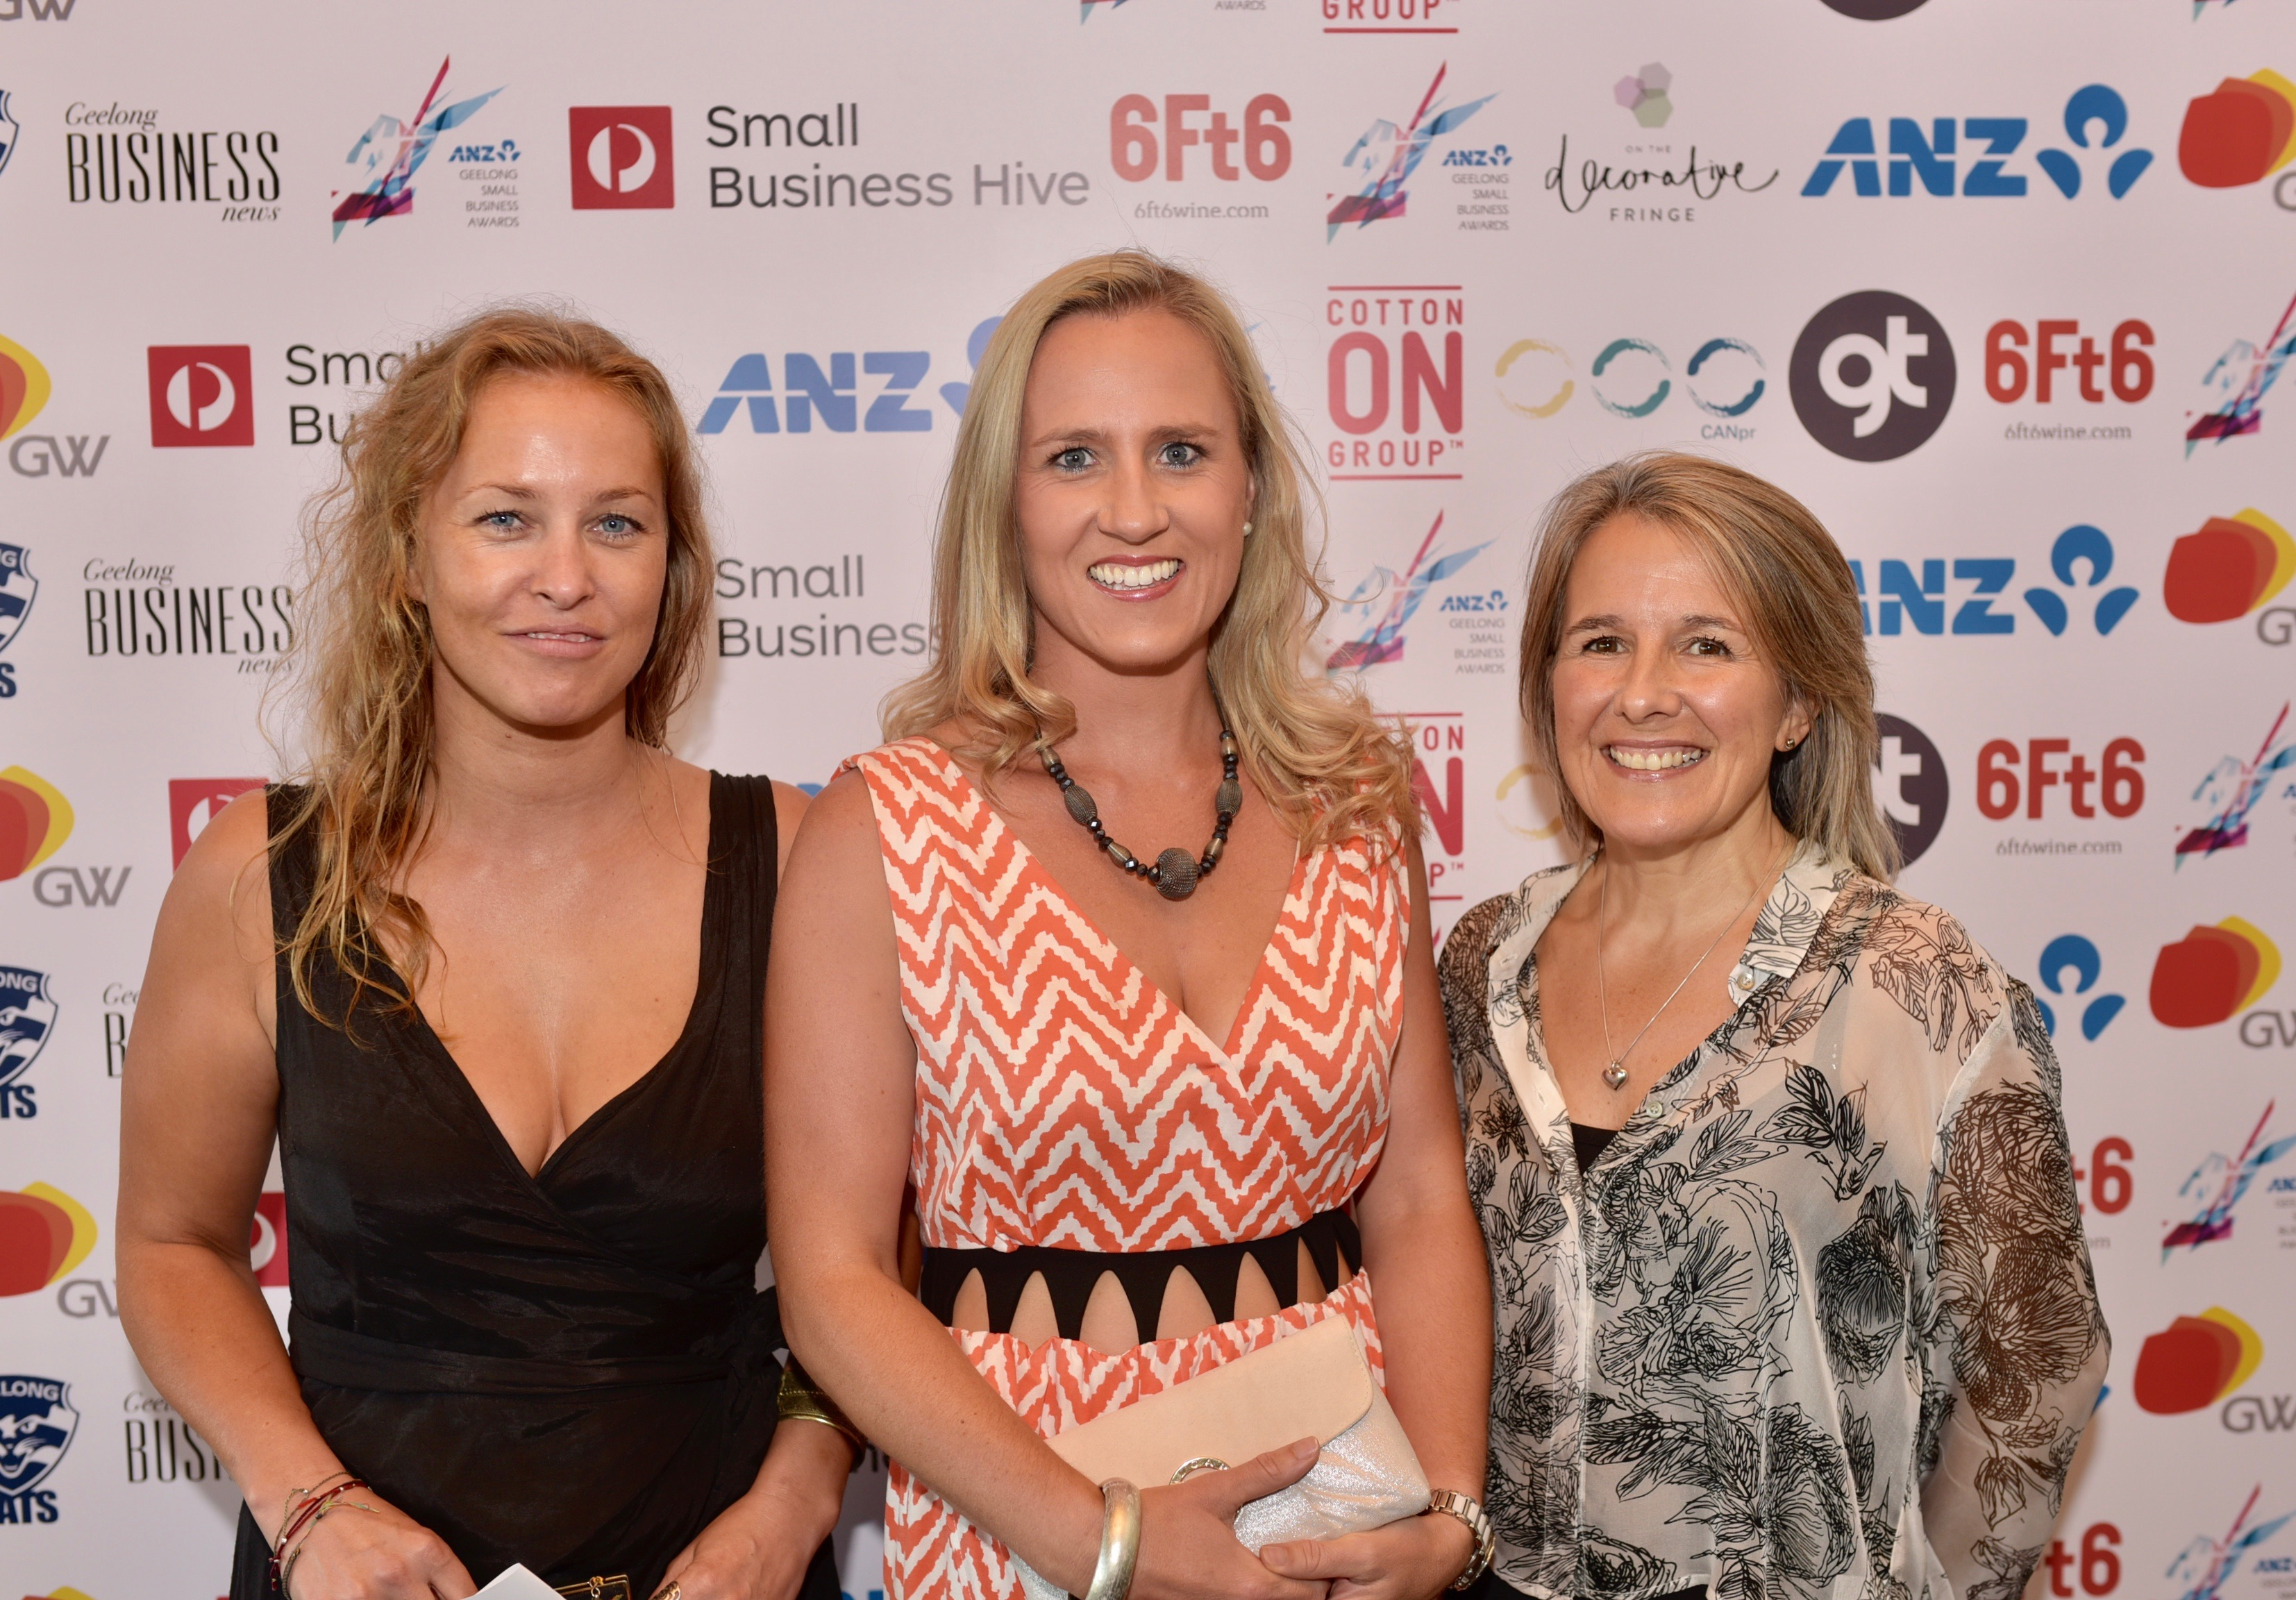 Geelong Small Business Awards